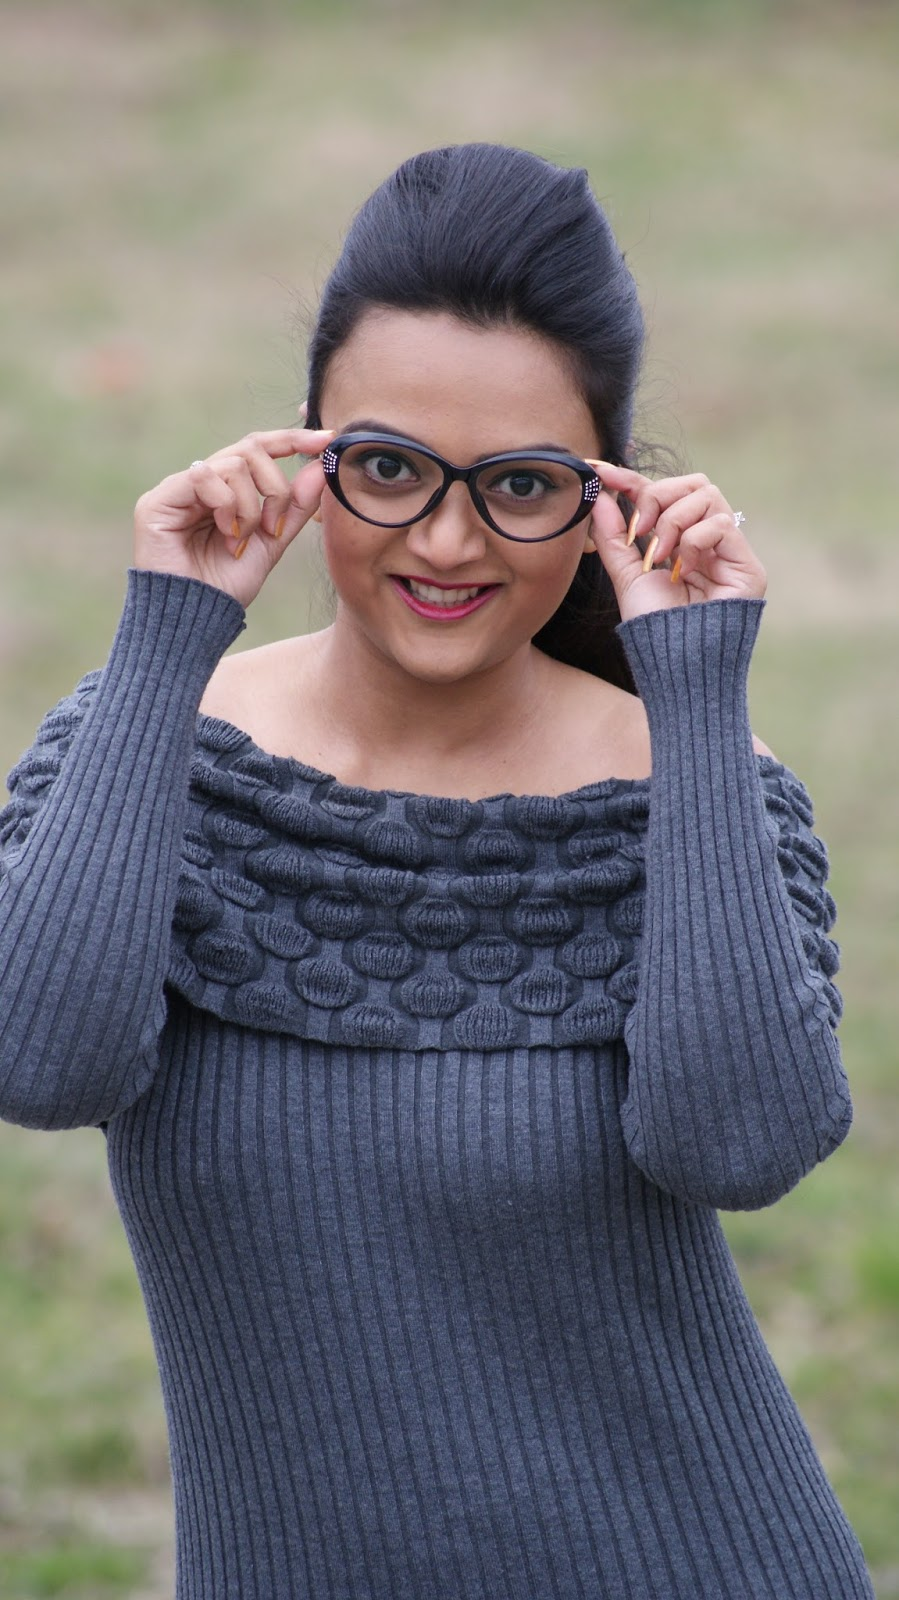 nerd glasses, nerdy glasses on round face, nerdy glasses on indian girl, firmoo glasses review